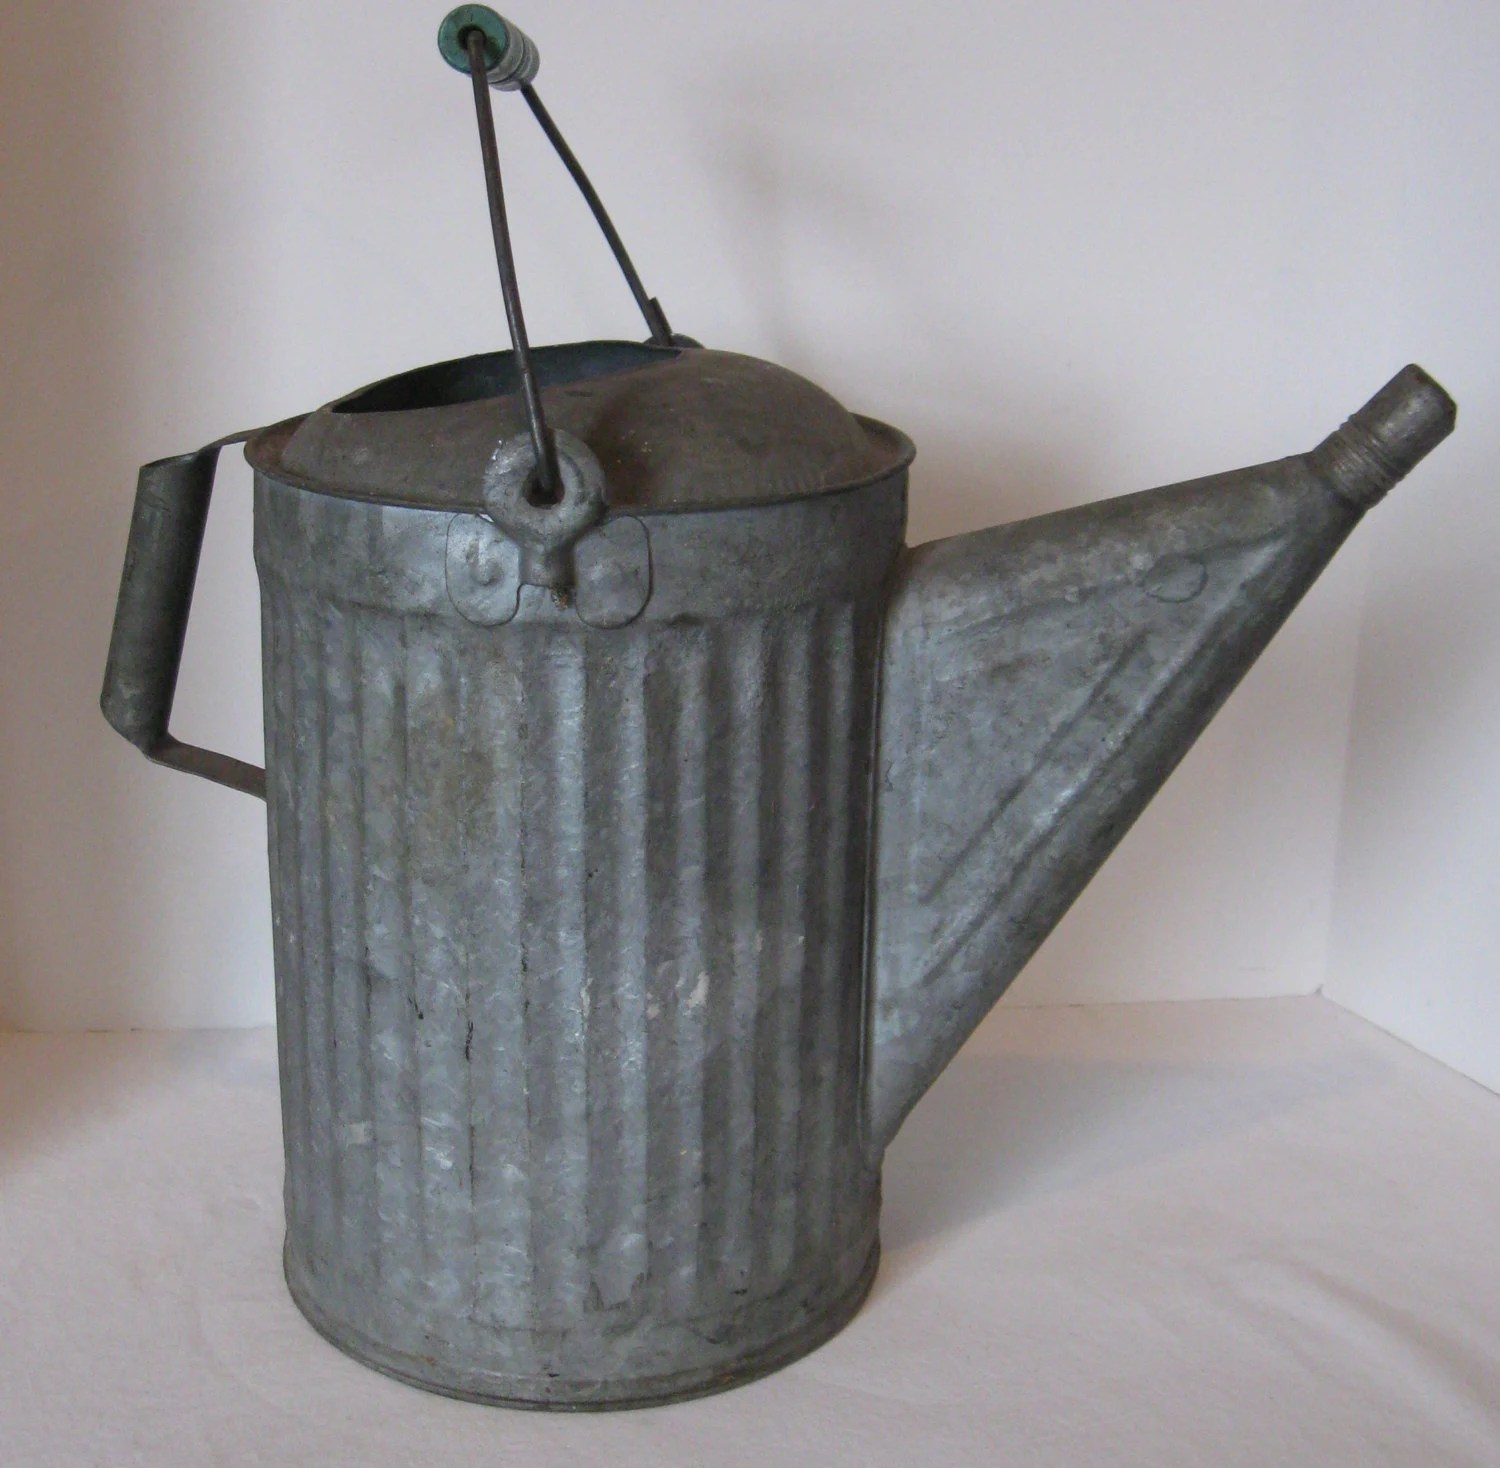 Galvanized Watering Cans Galvanized Watering Can Vintage With Bail Handle And Original